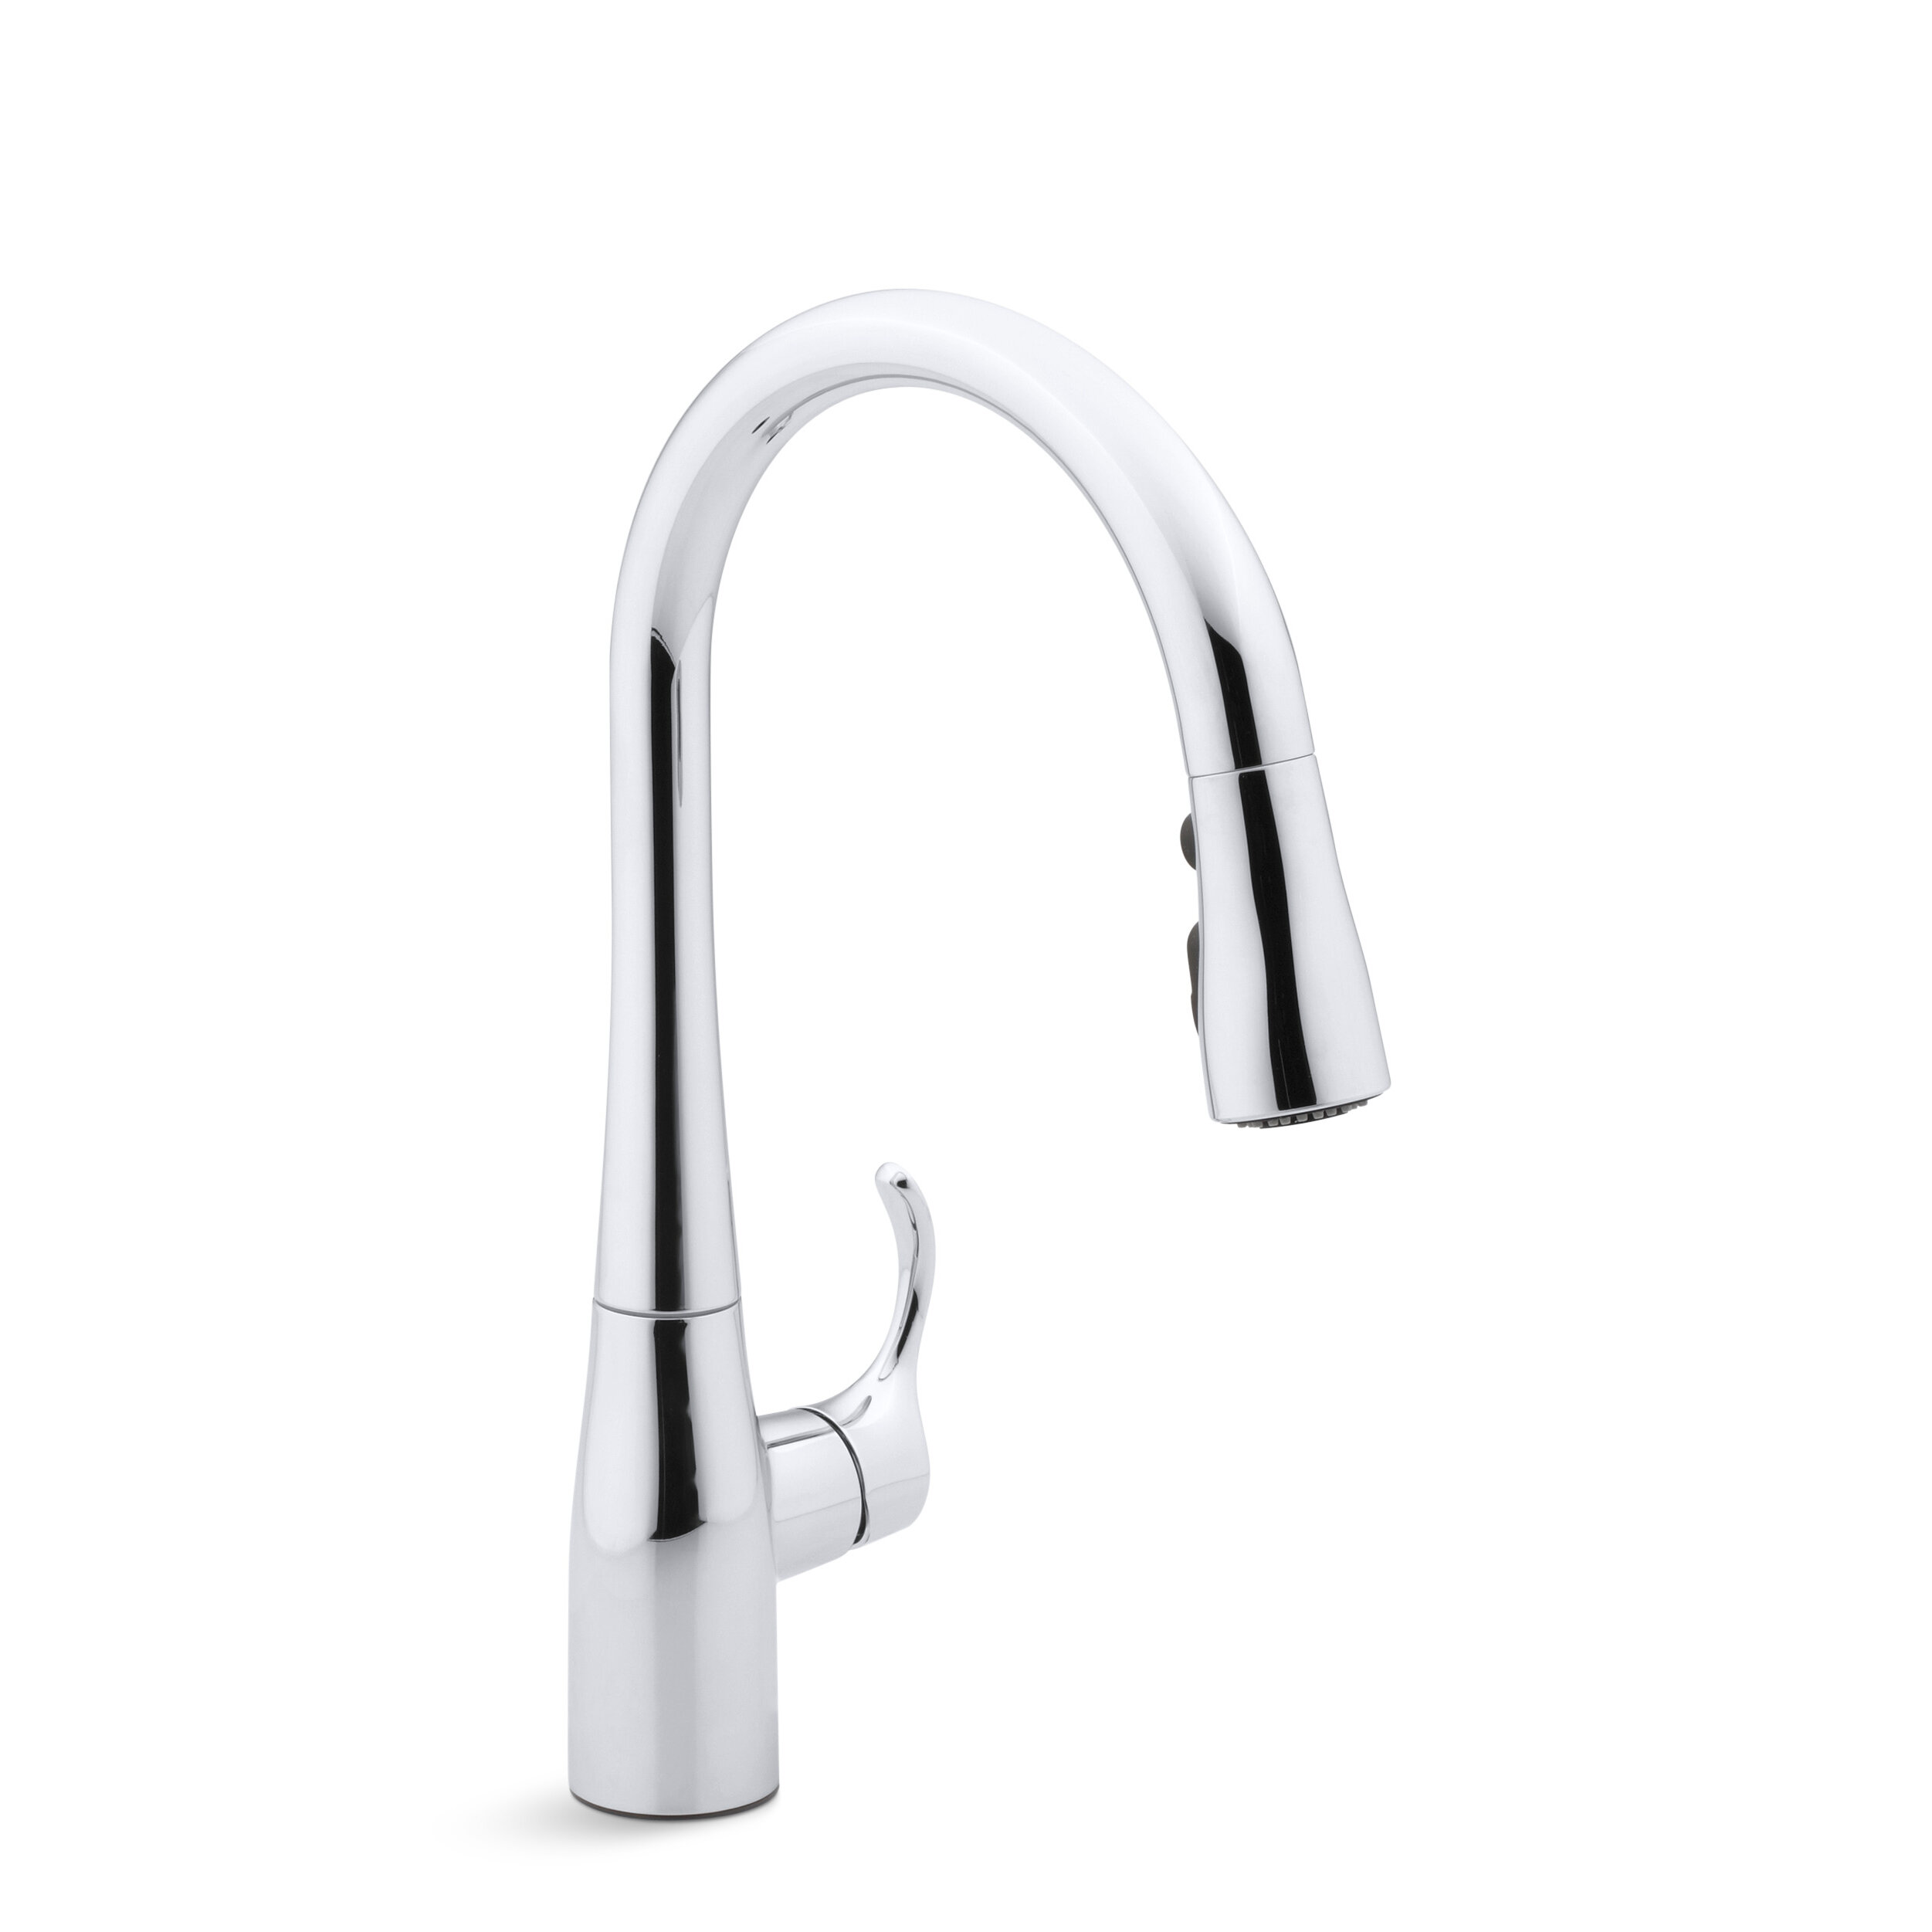 "Simplice Single-Hole Kitchen Sink Faucet with 8-8/8"" Pull-Down Spout,  Docknetik Magnetic Docking System, ProMotion™, MasterClean™"